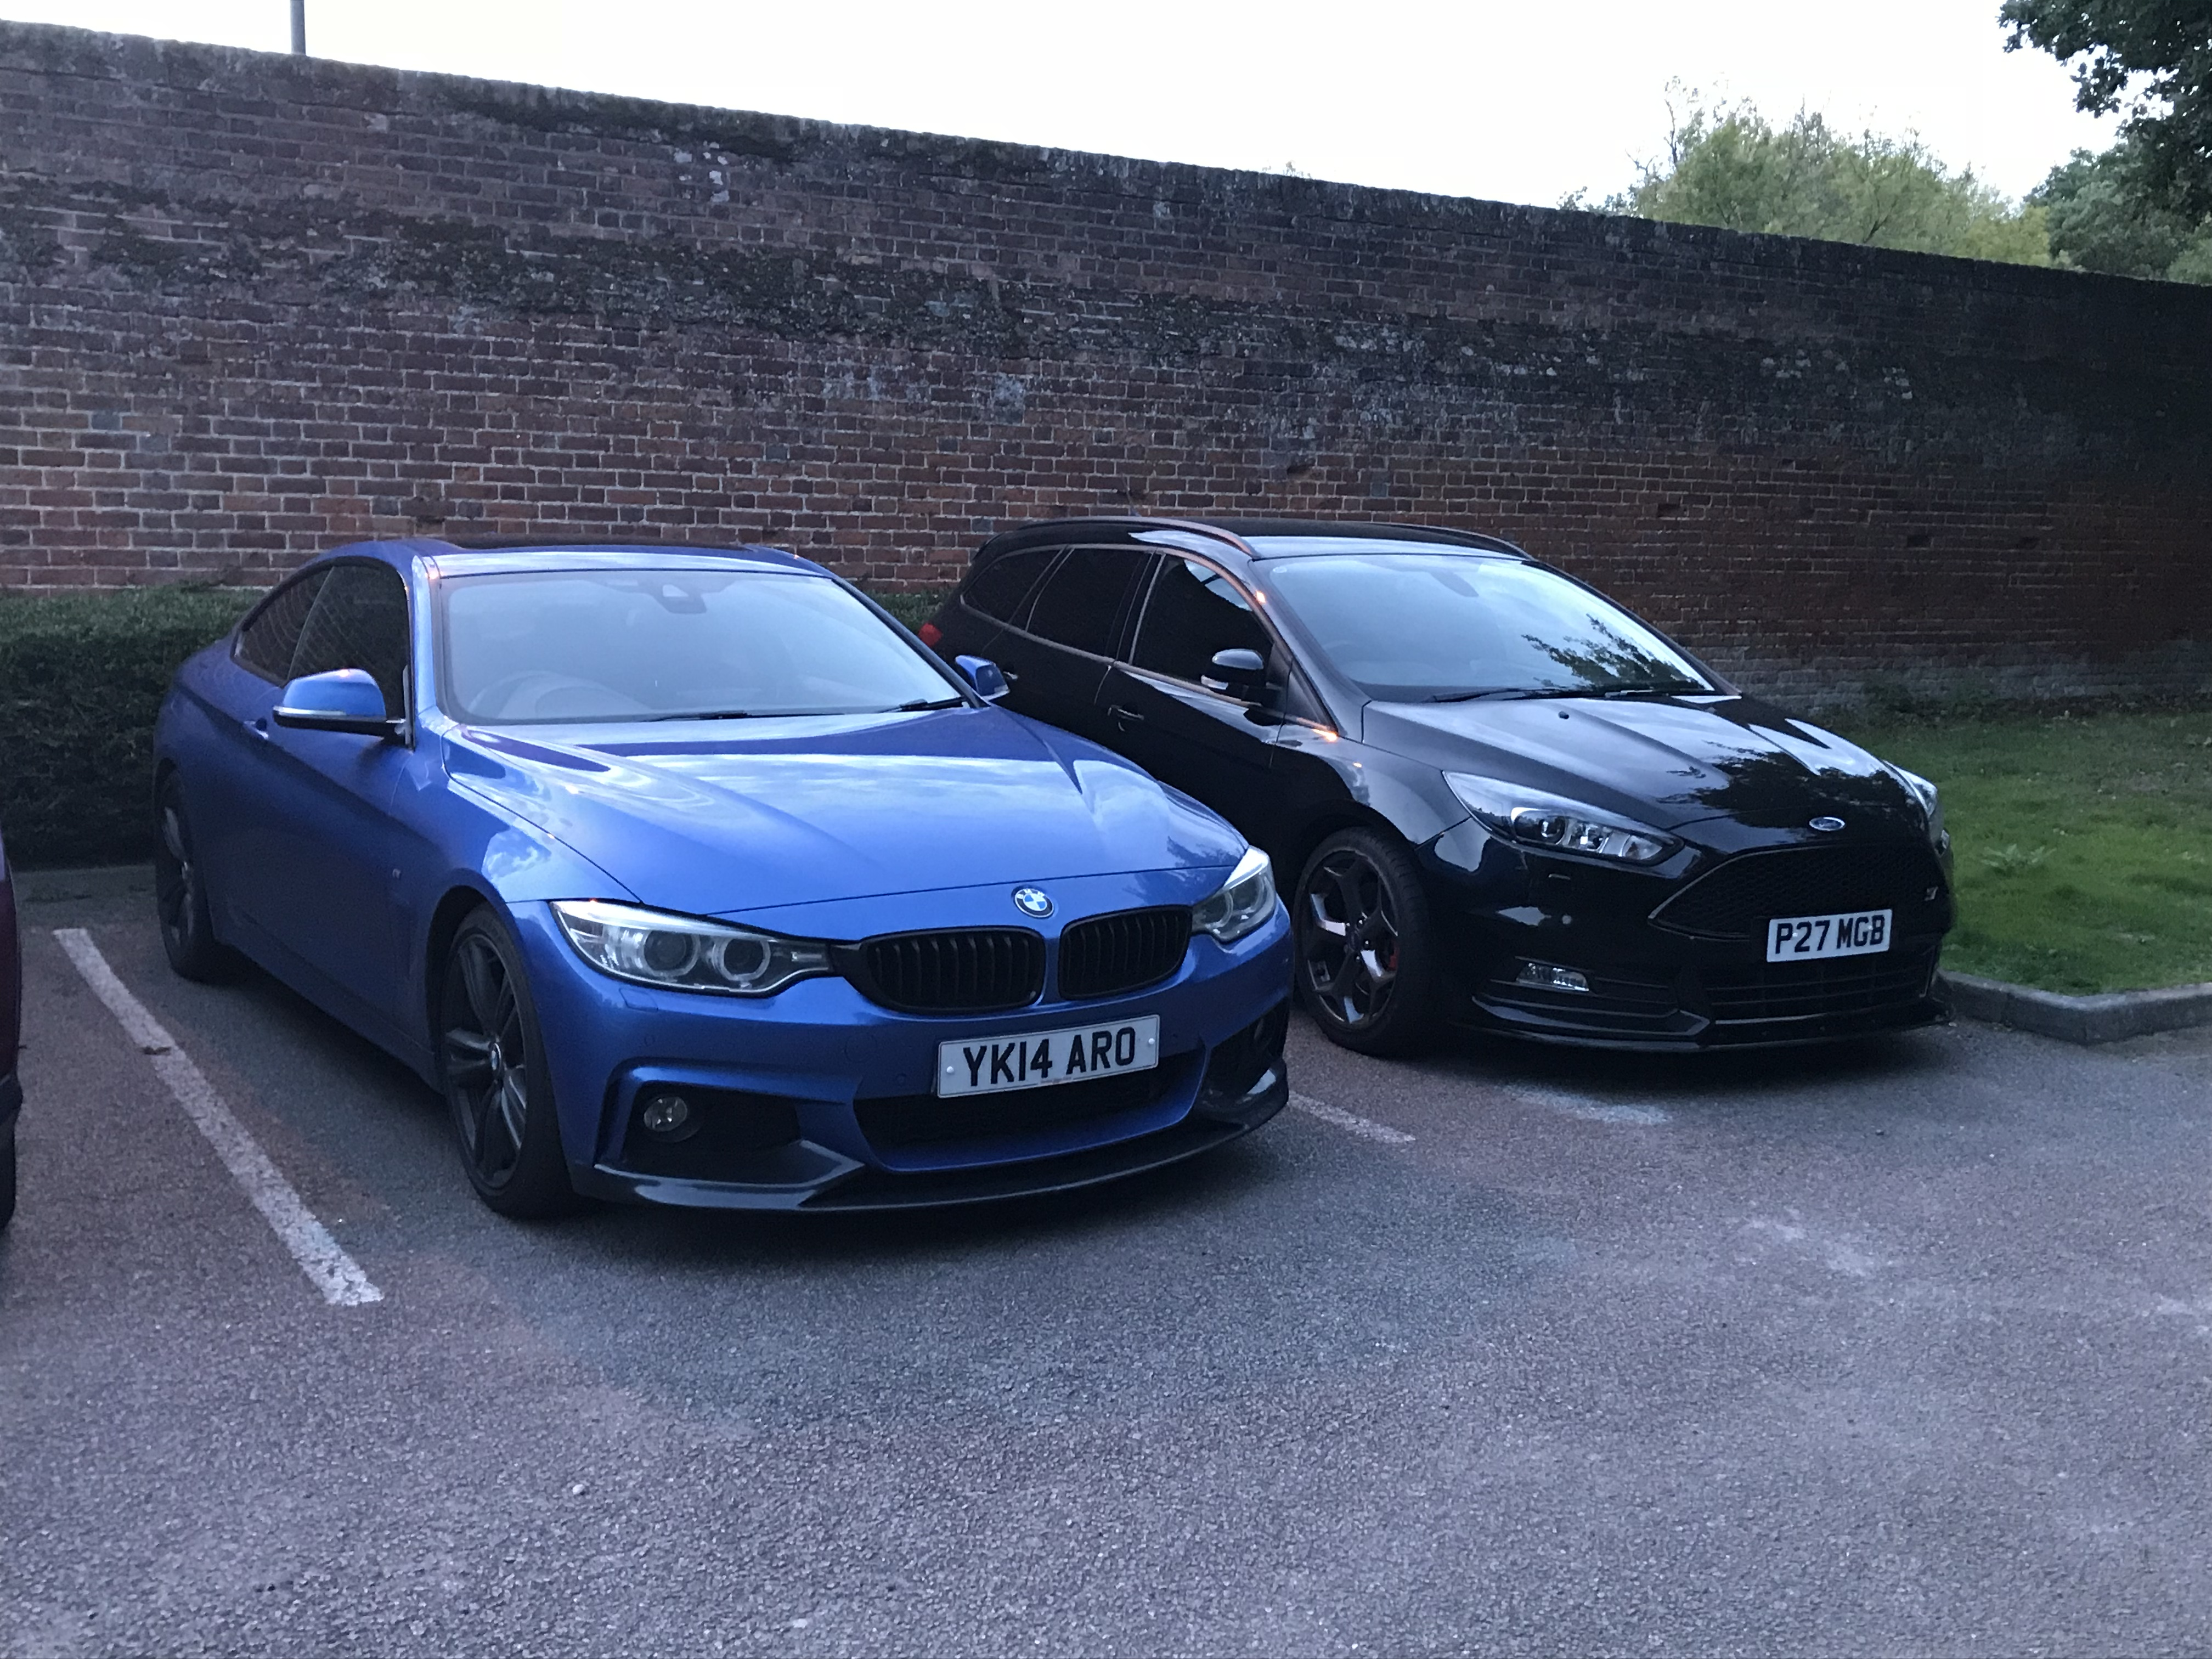 BMW 430d - Page 1 - Readers' Cars - PistonHeads